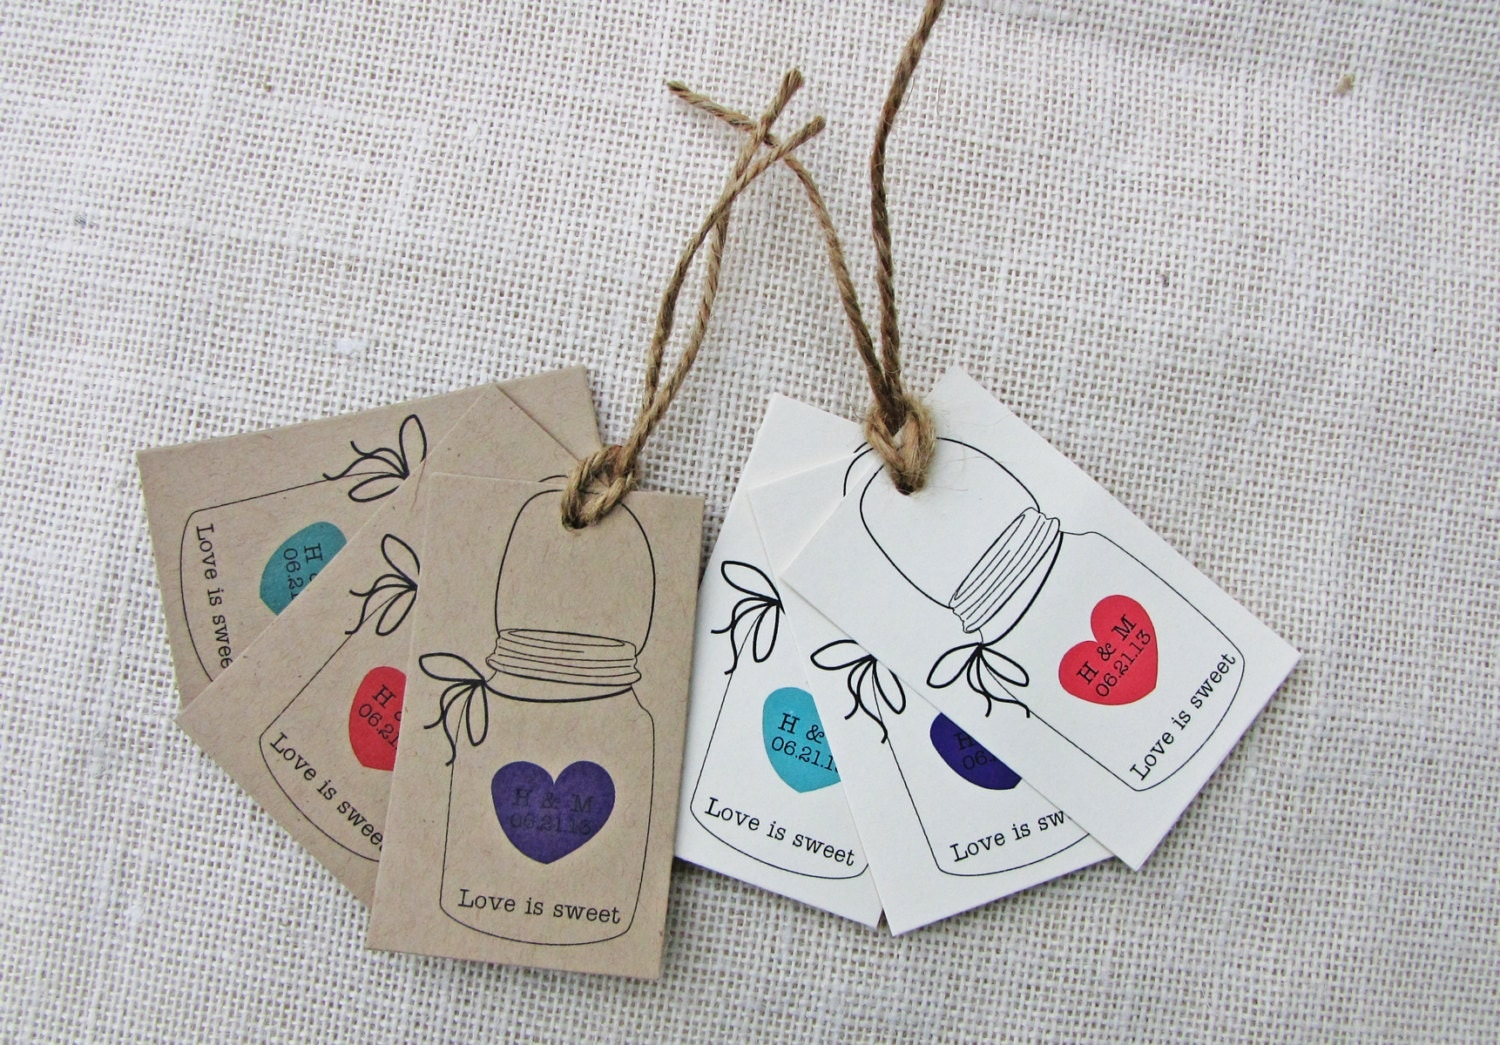 Wedding Favor Tags For Mason Jars : favorite favorited like this item add it to your favorites to revisit ...